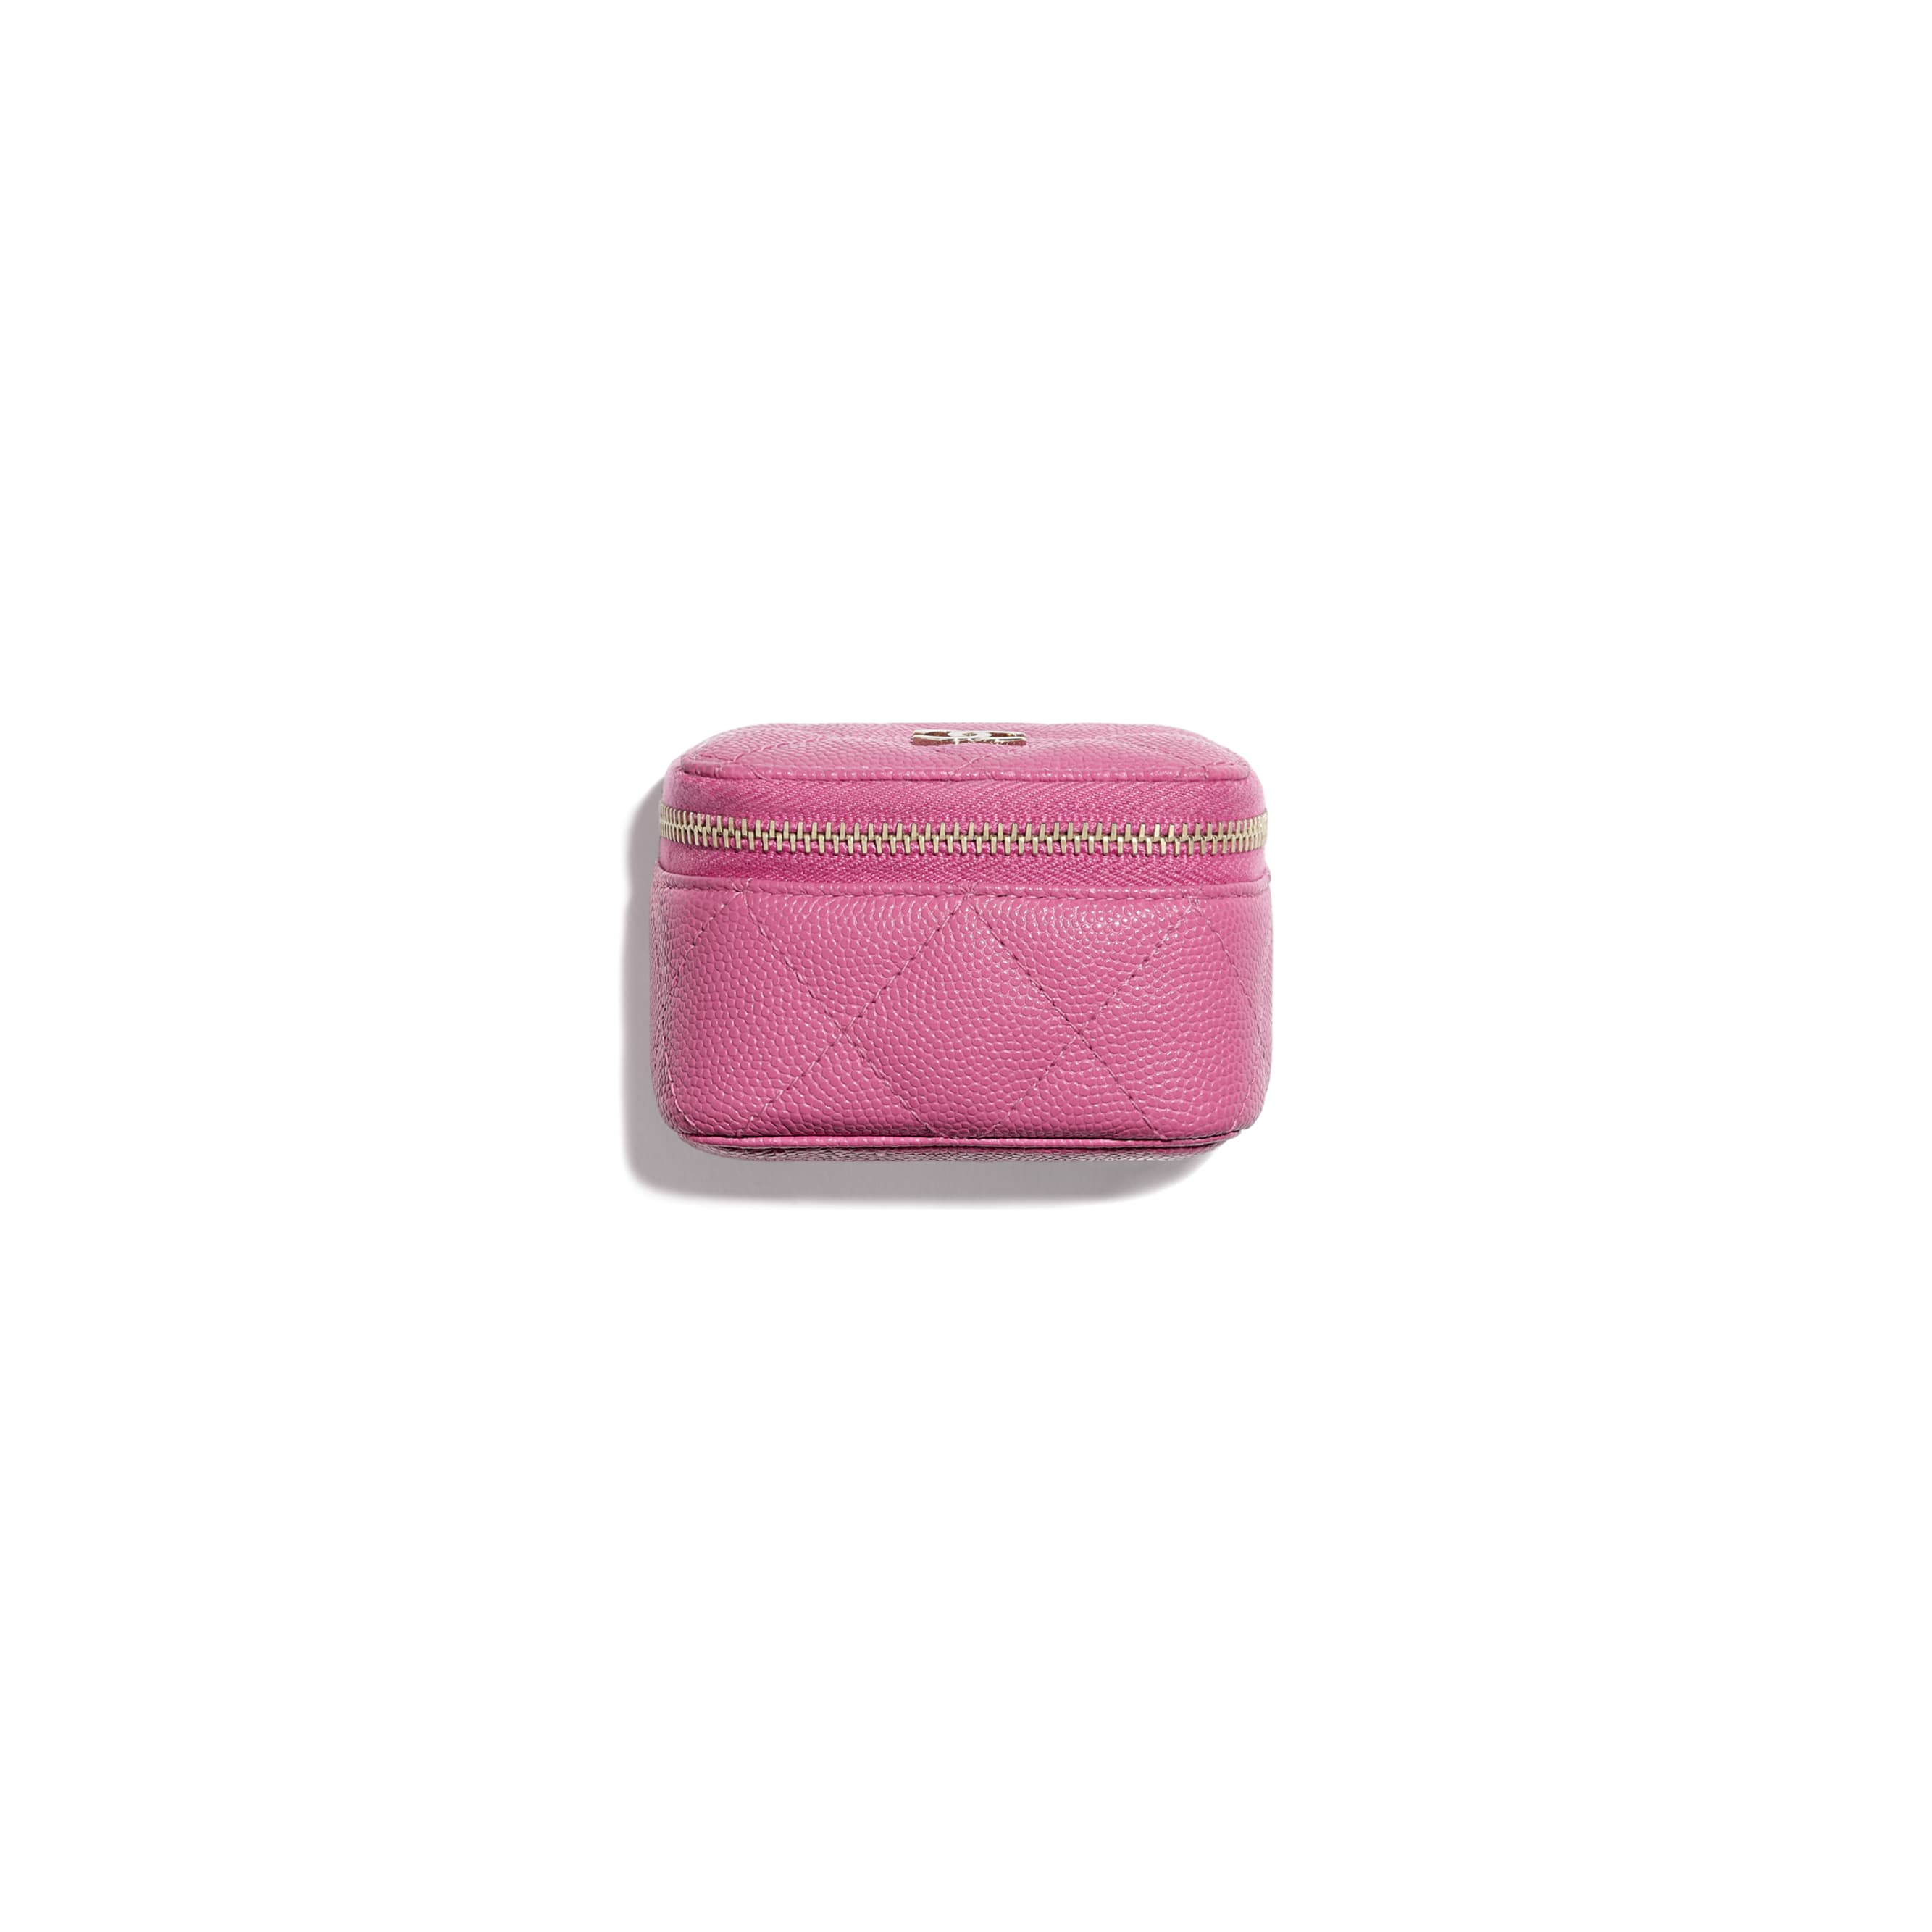 Classic Small Jewellery Pouch - Pink - Grained Calfskin & Gold-Tone Metal - Default view - see standard sized version